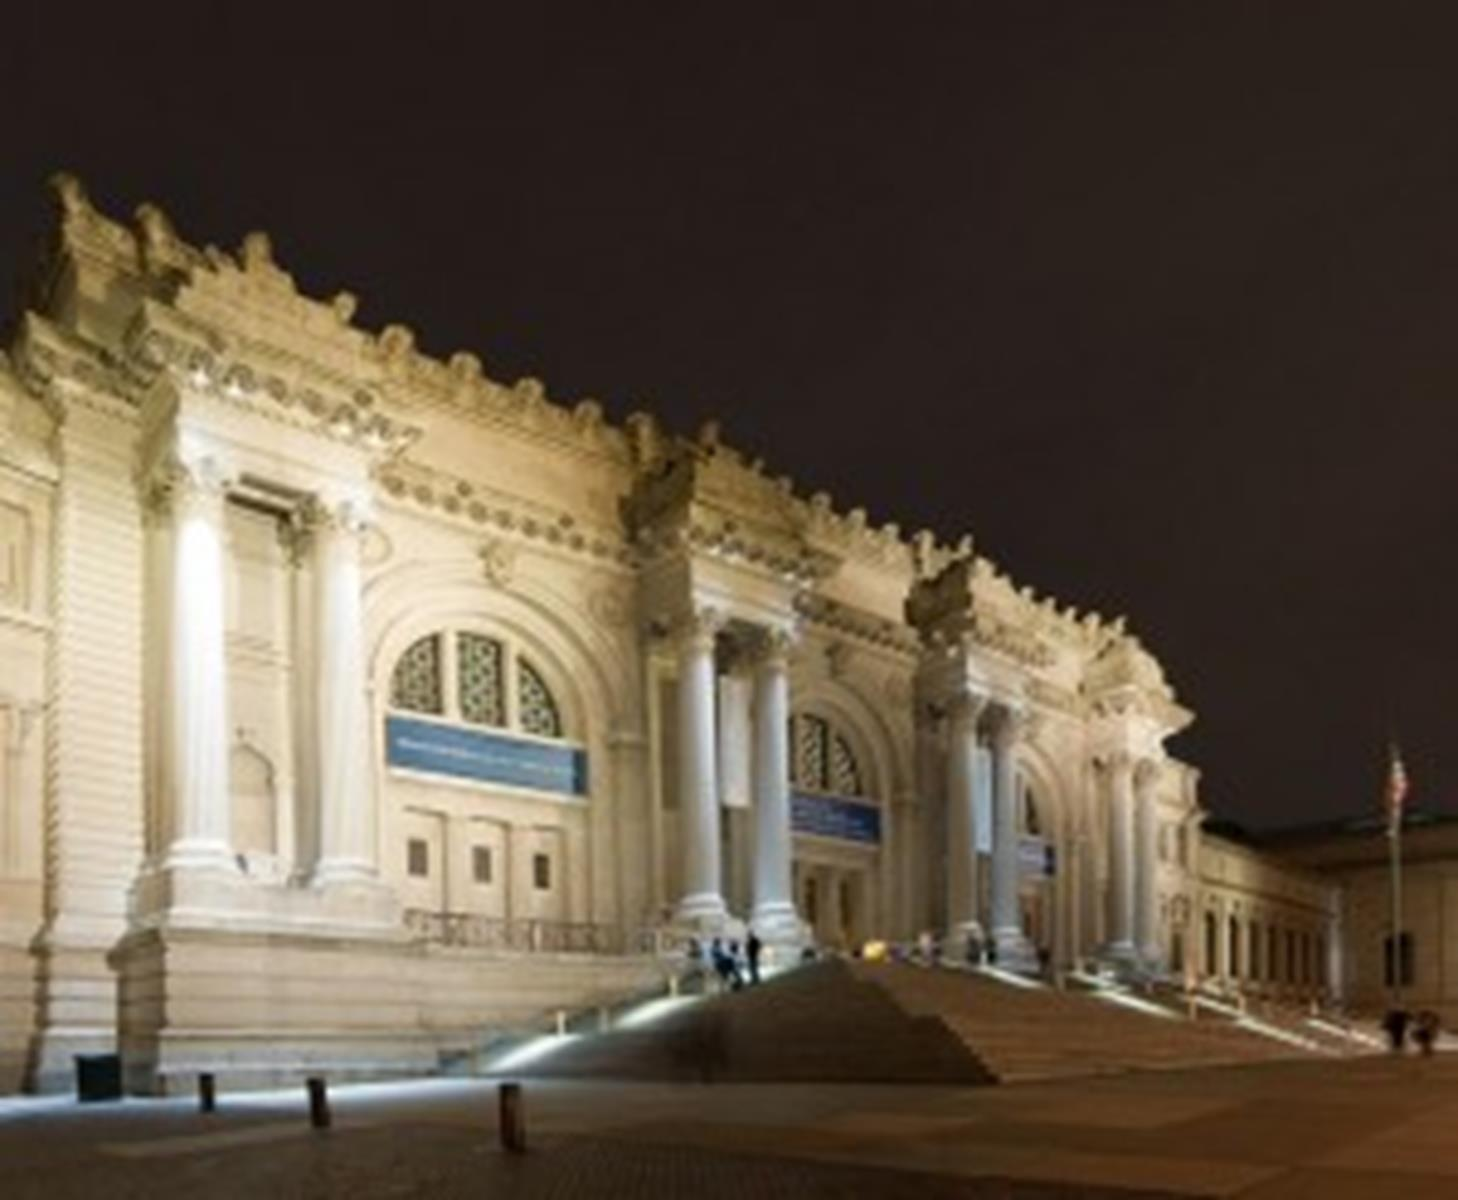 The Metropolitan Museum of Art